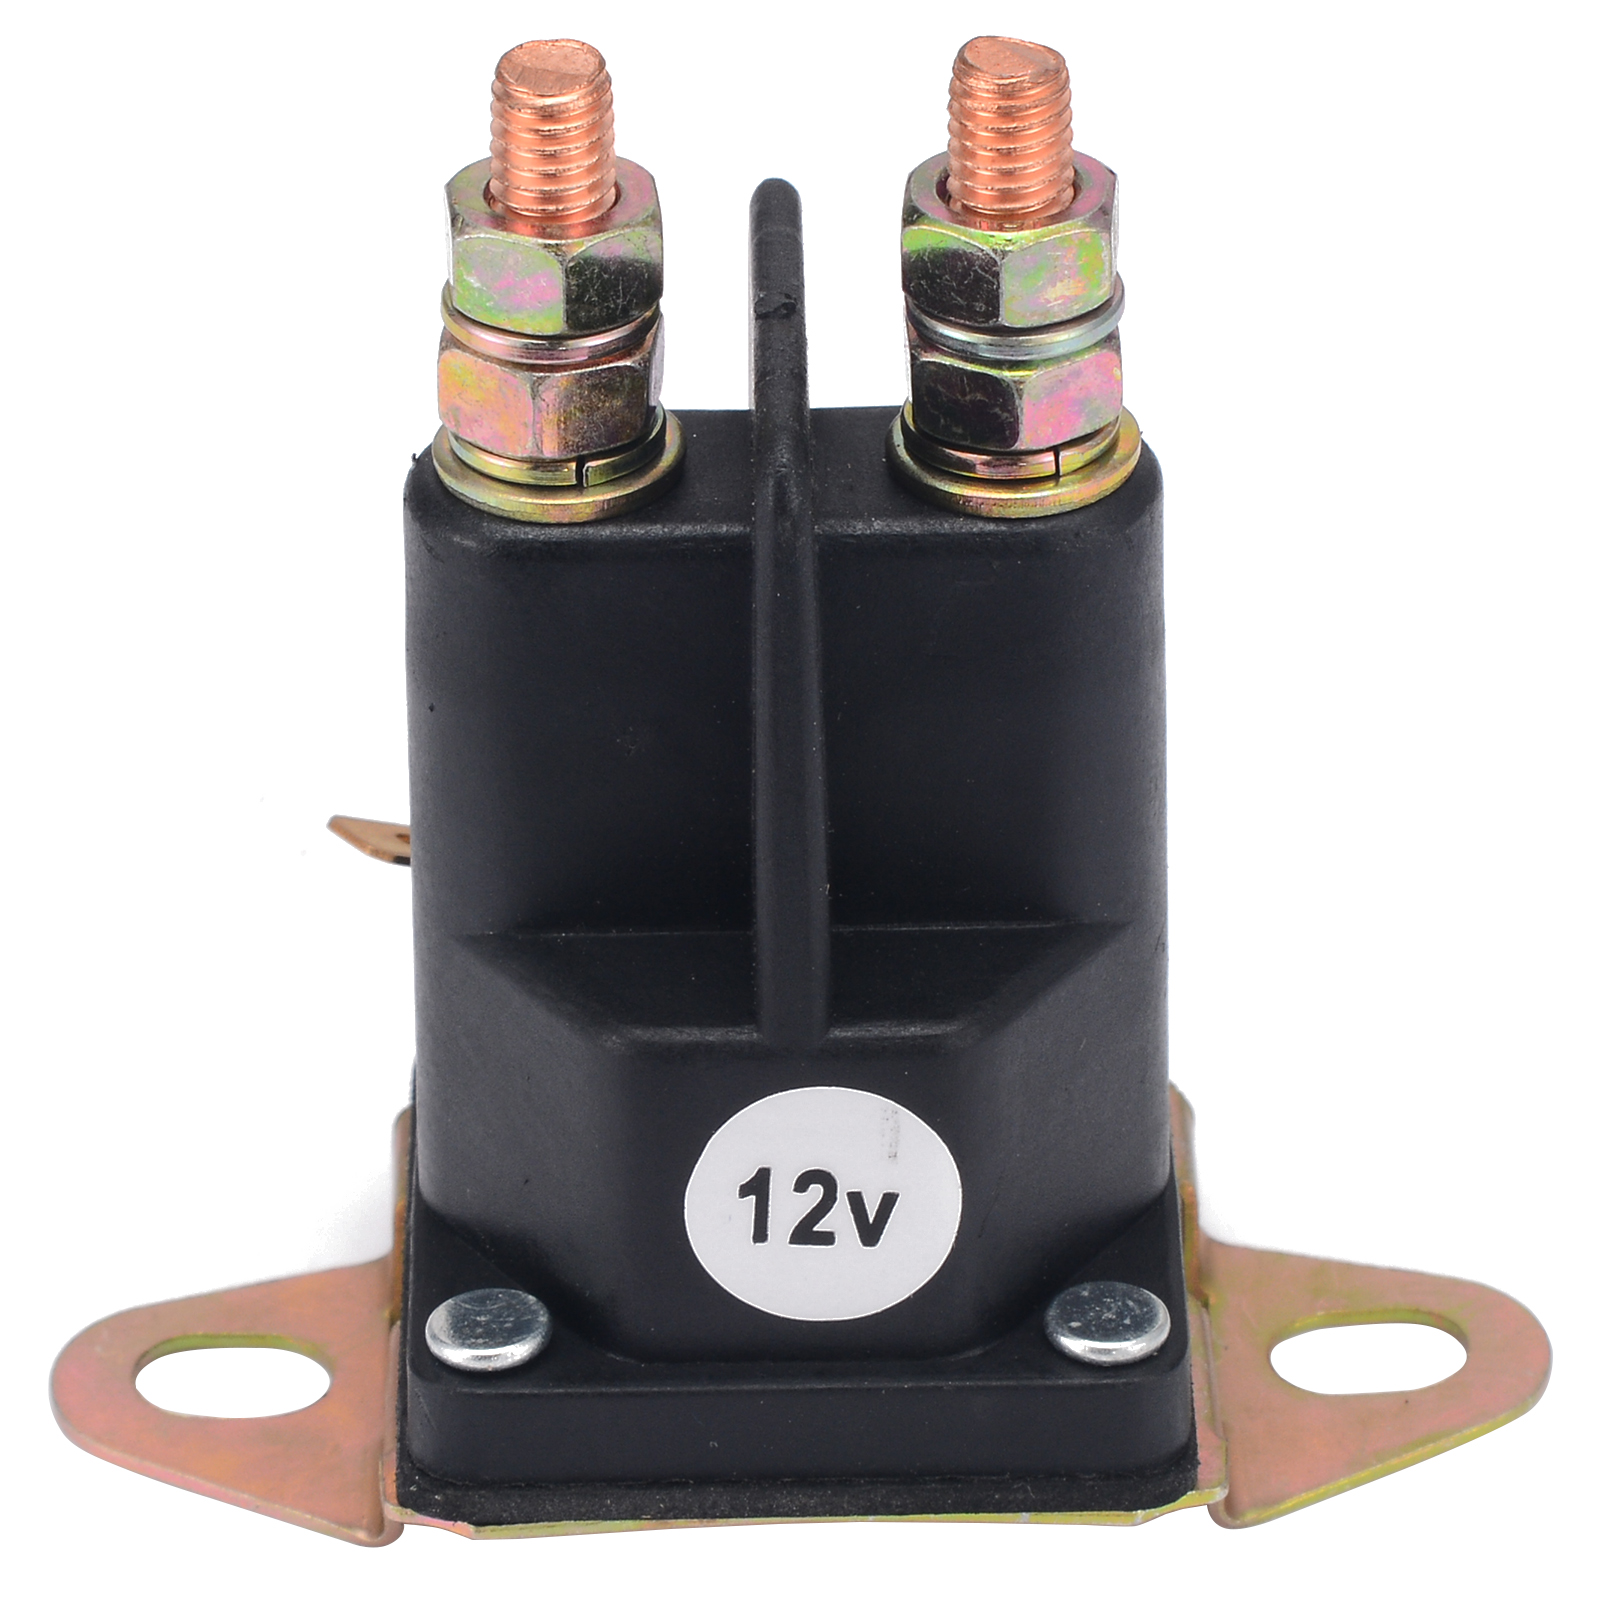 1pc Universal 3Pins Starter Solenoid Relay Switch 12v Solenoid Relay Switch Replace For MTD Lawnmower1pc Universal 3Pins Starter Solenoid Relay Switch 12v Solenoid Relay Switch Replace For MTD Lawnmower